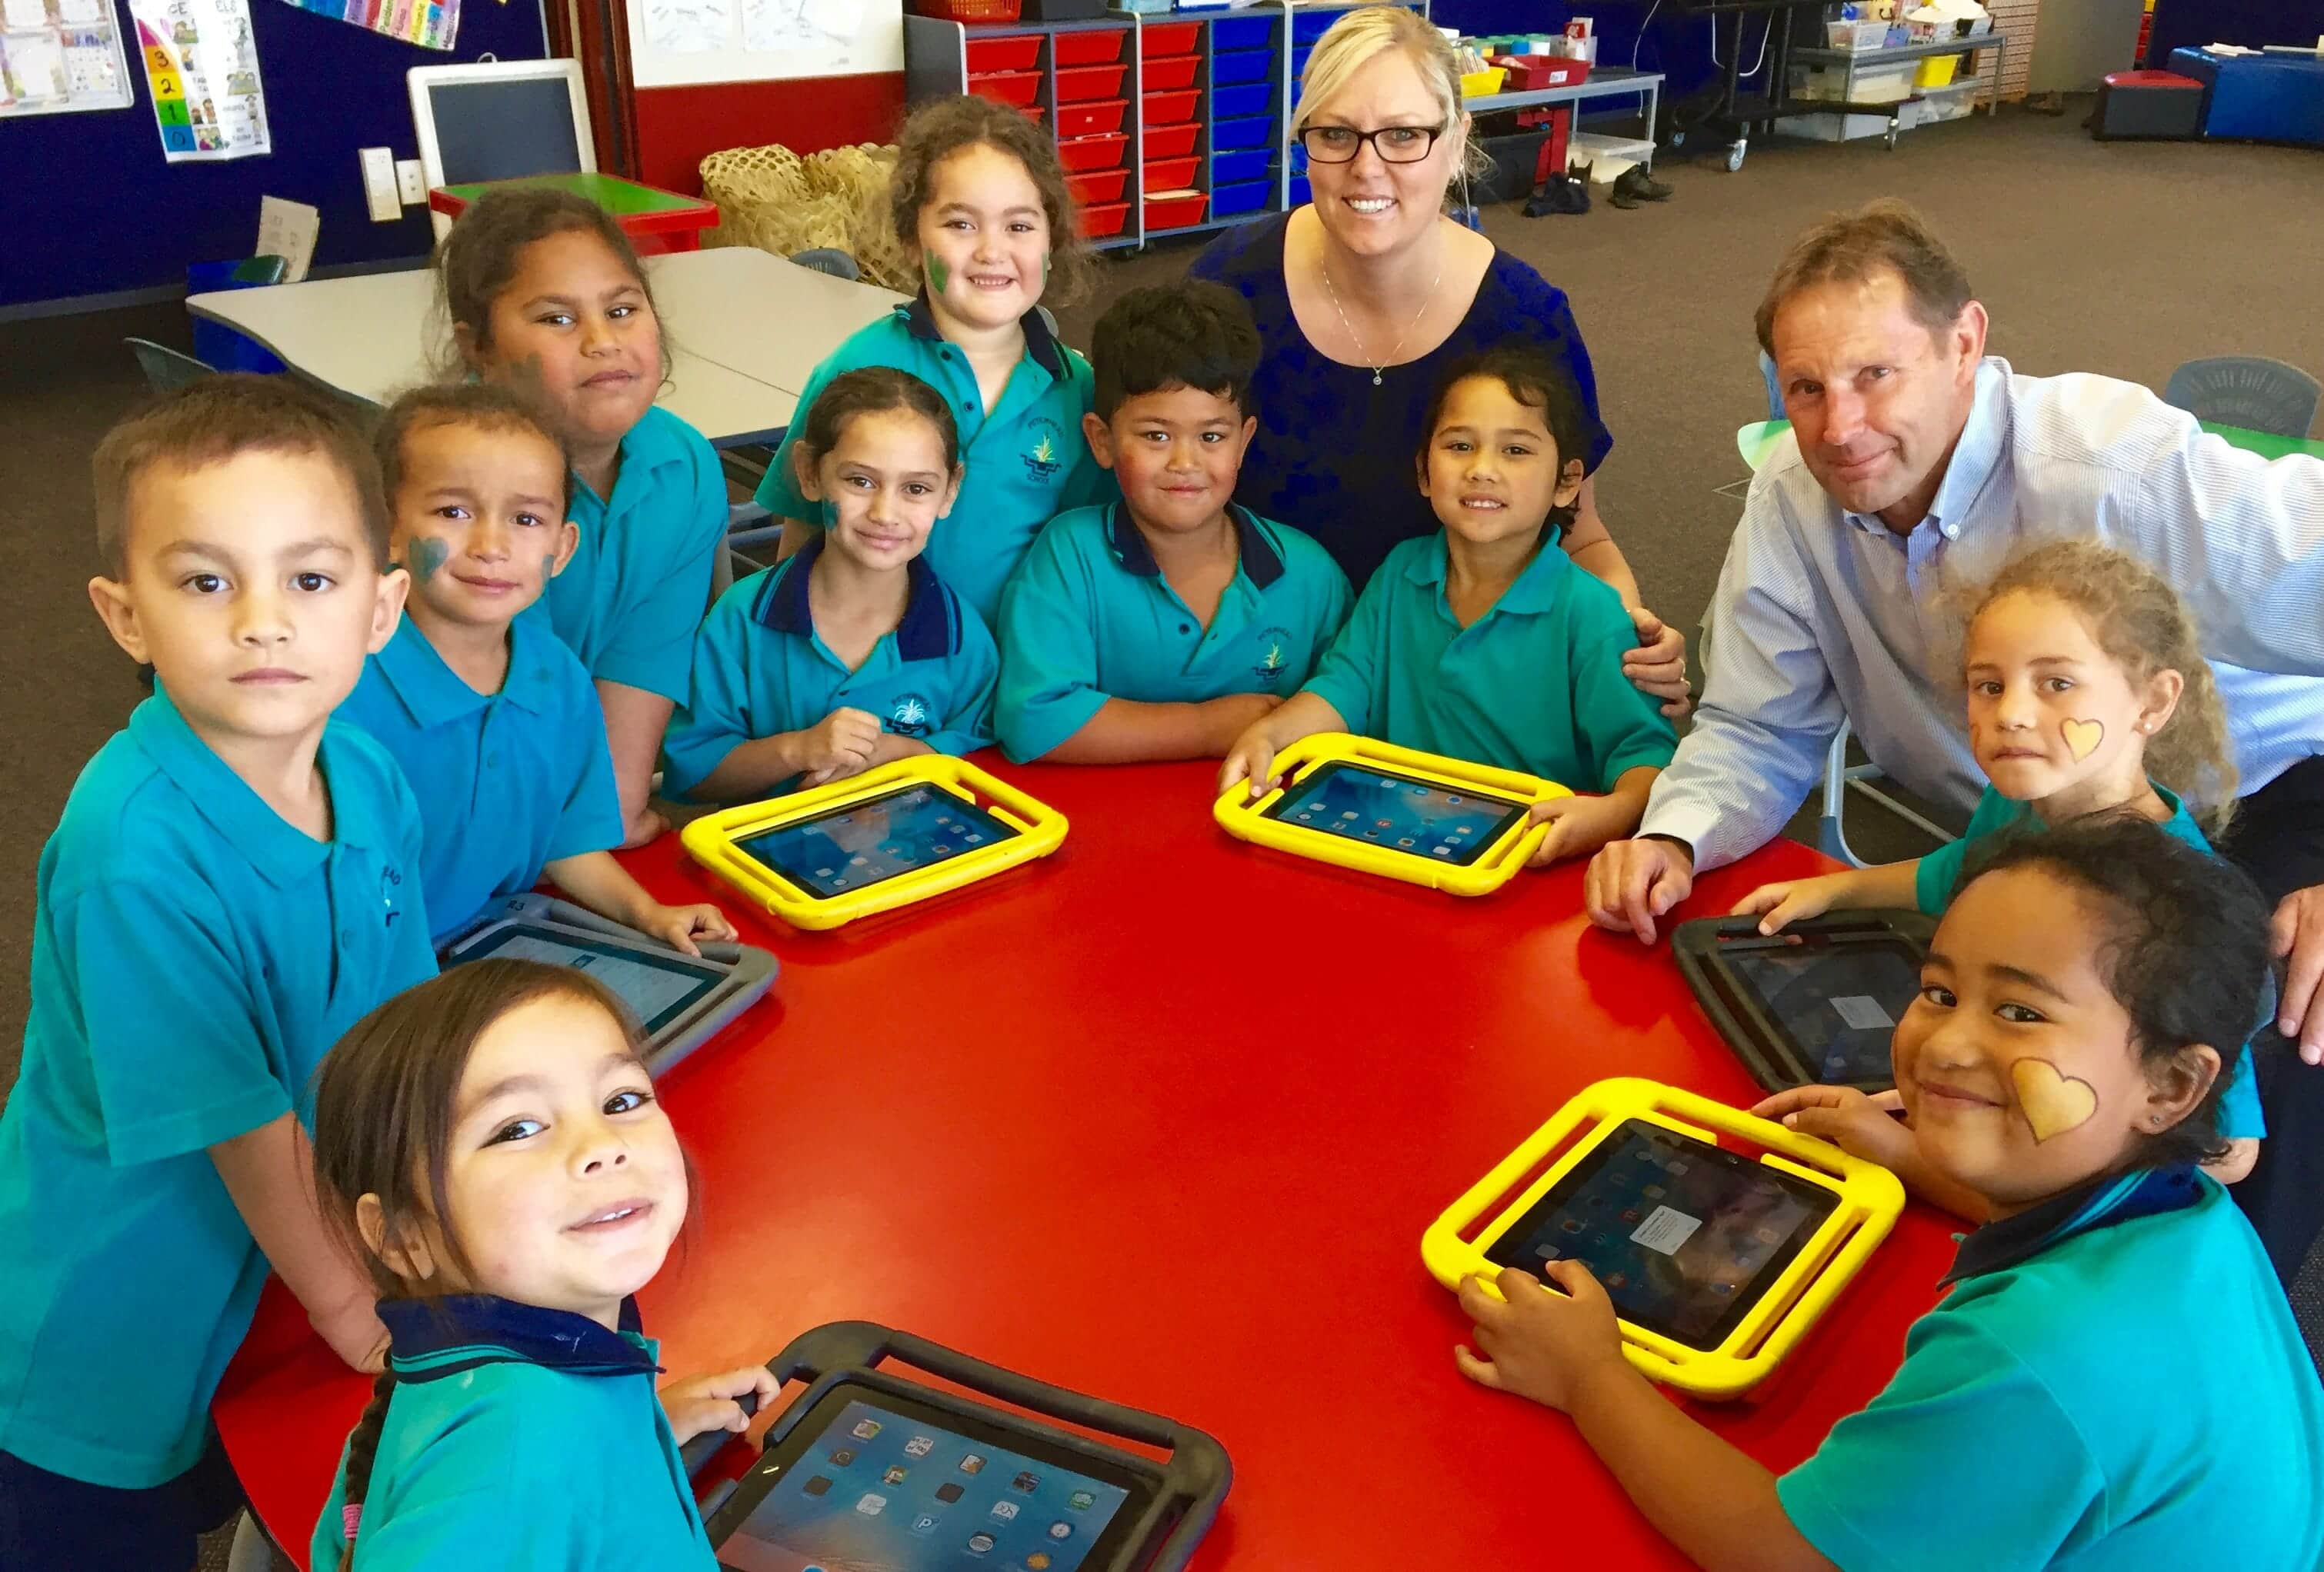 Peterhead principal Martin Genet and teacher Anna Berryman with a group of Year-1 students. Chromebook's, iPads and other devices provided through funding from the Flaxmere Licensing Trust have played a key role in improving student learning at the Flaxmere school.